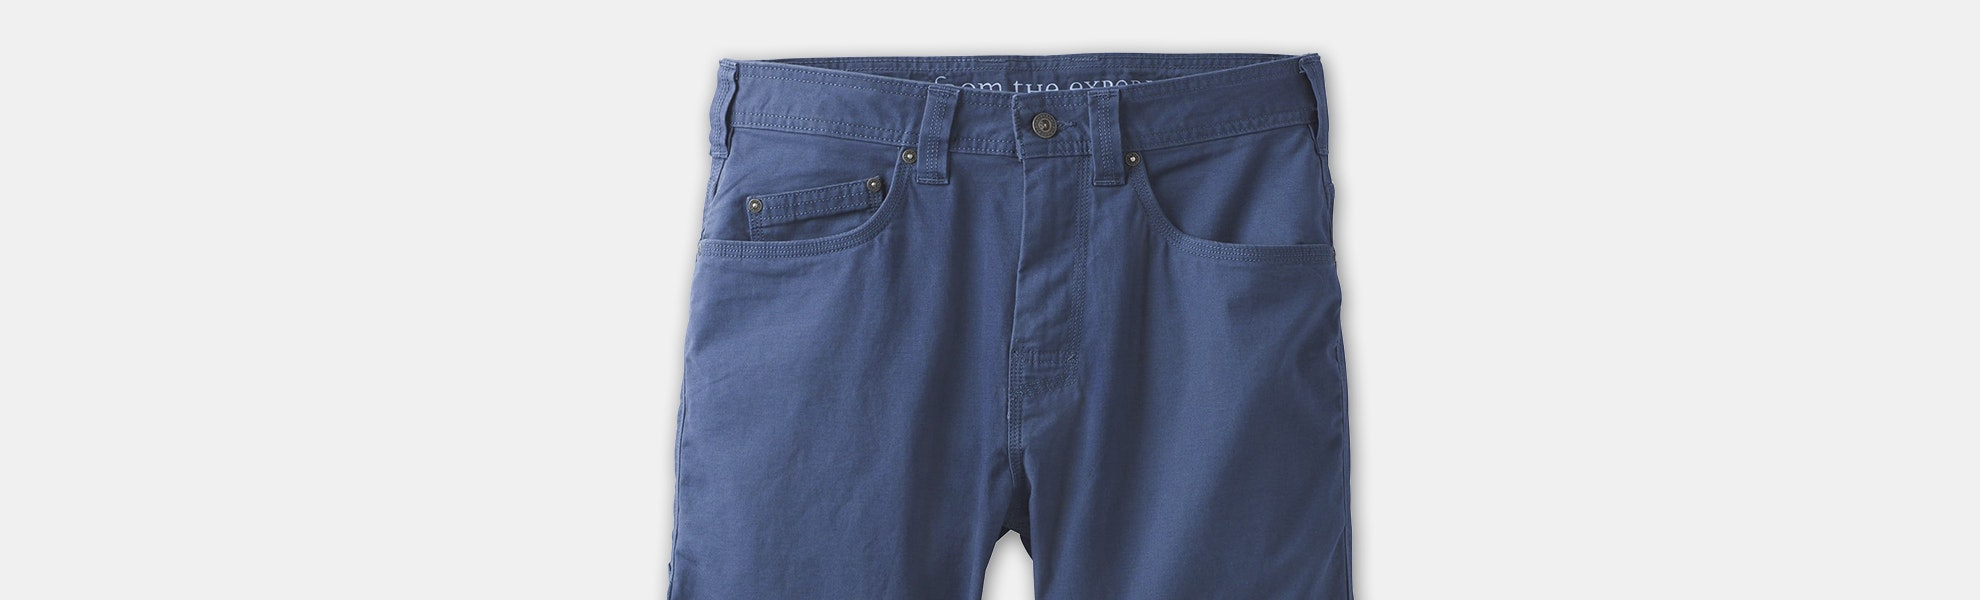 "prAna Bronson 11"" Men's Shorts"